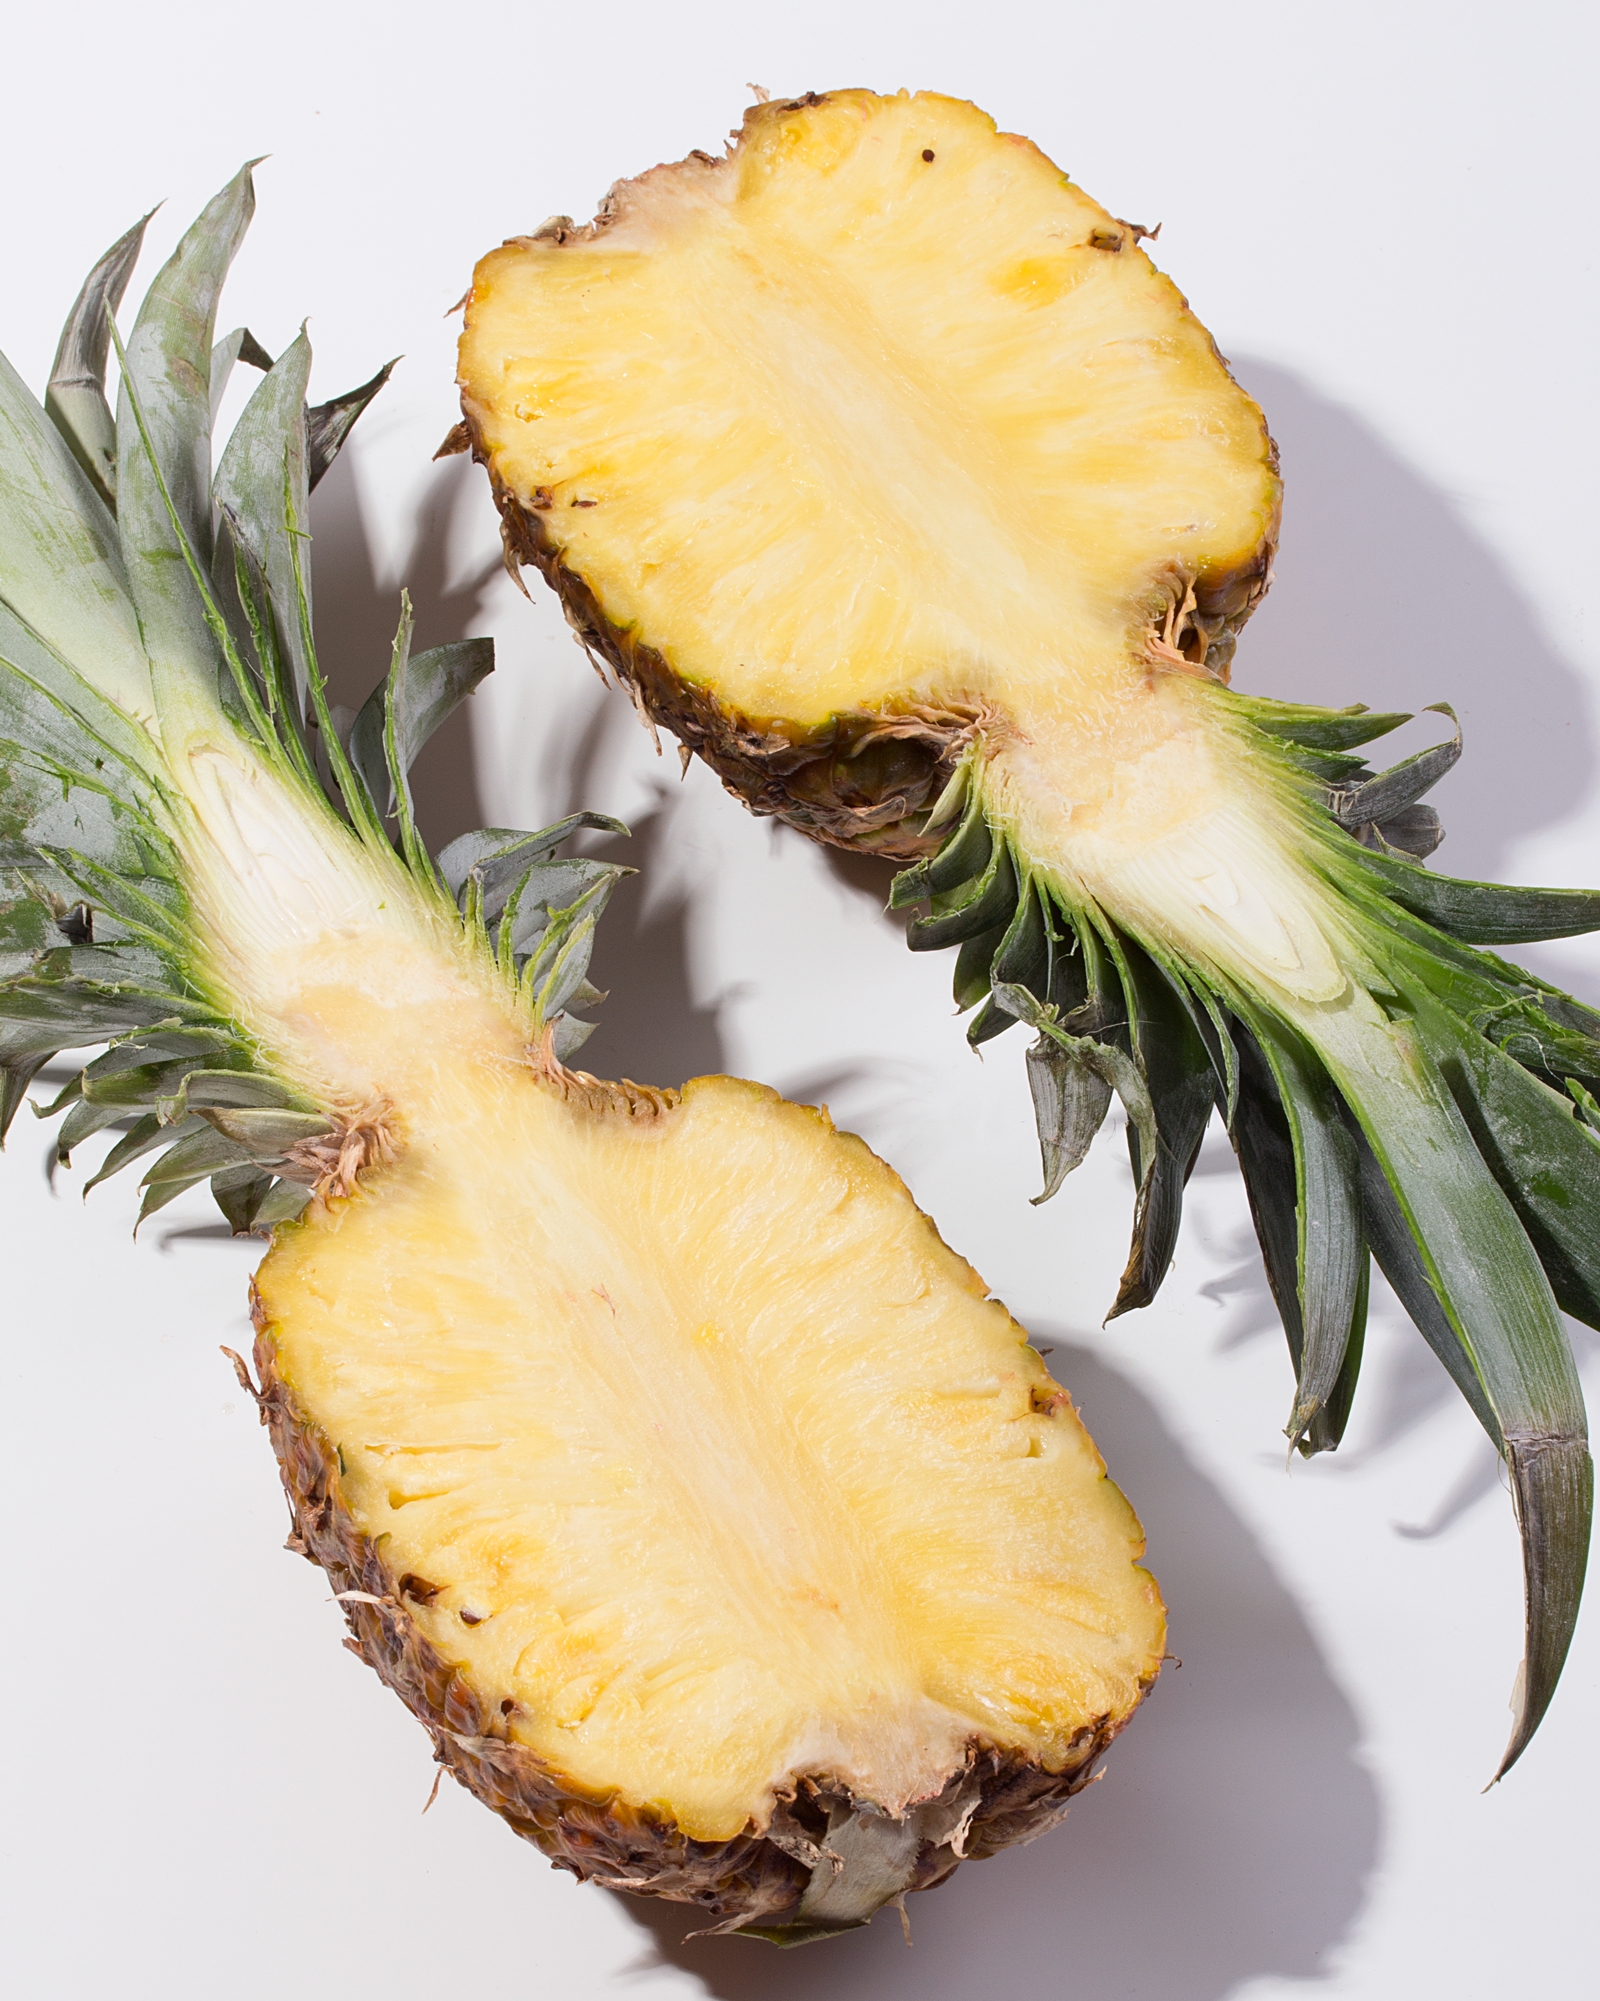 Grilled Pineapple Mezcal Sour